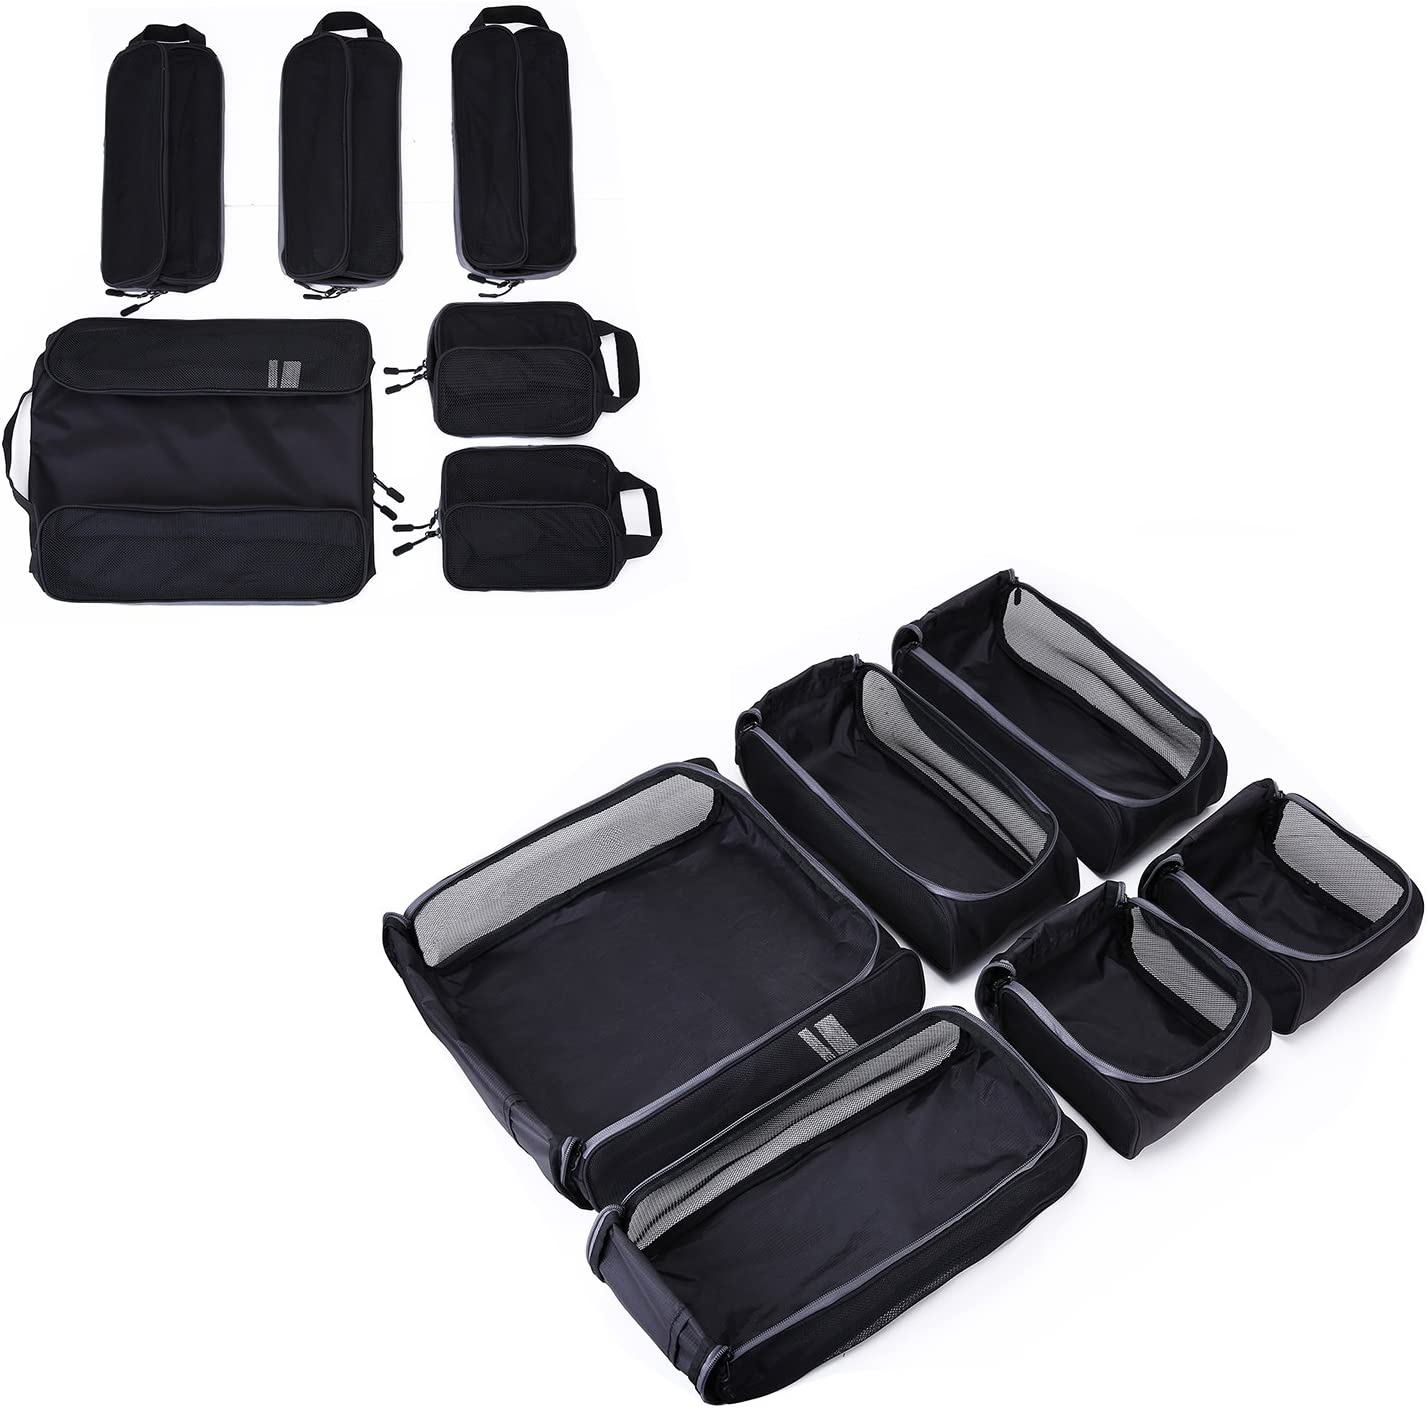 Packing Cubes Suitcase 3 Sizes BAGSMART 6-Pcs Travel Cube Organizer Rigid Fit in Carry on Luggage Backpack